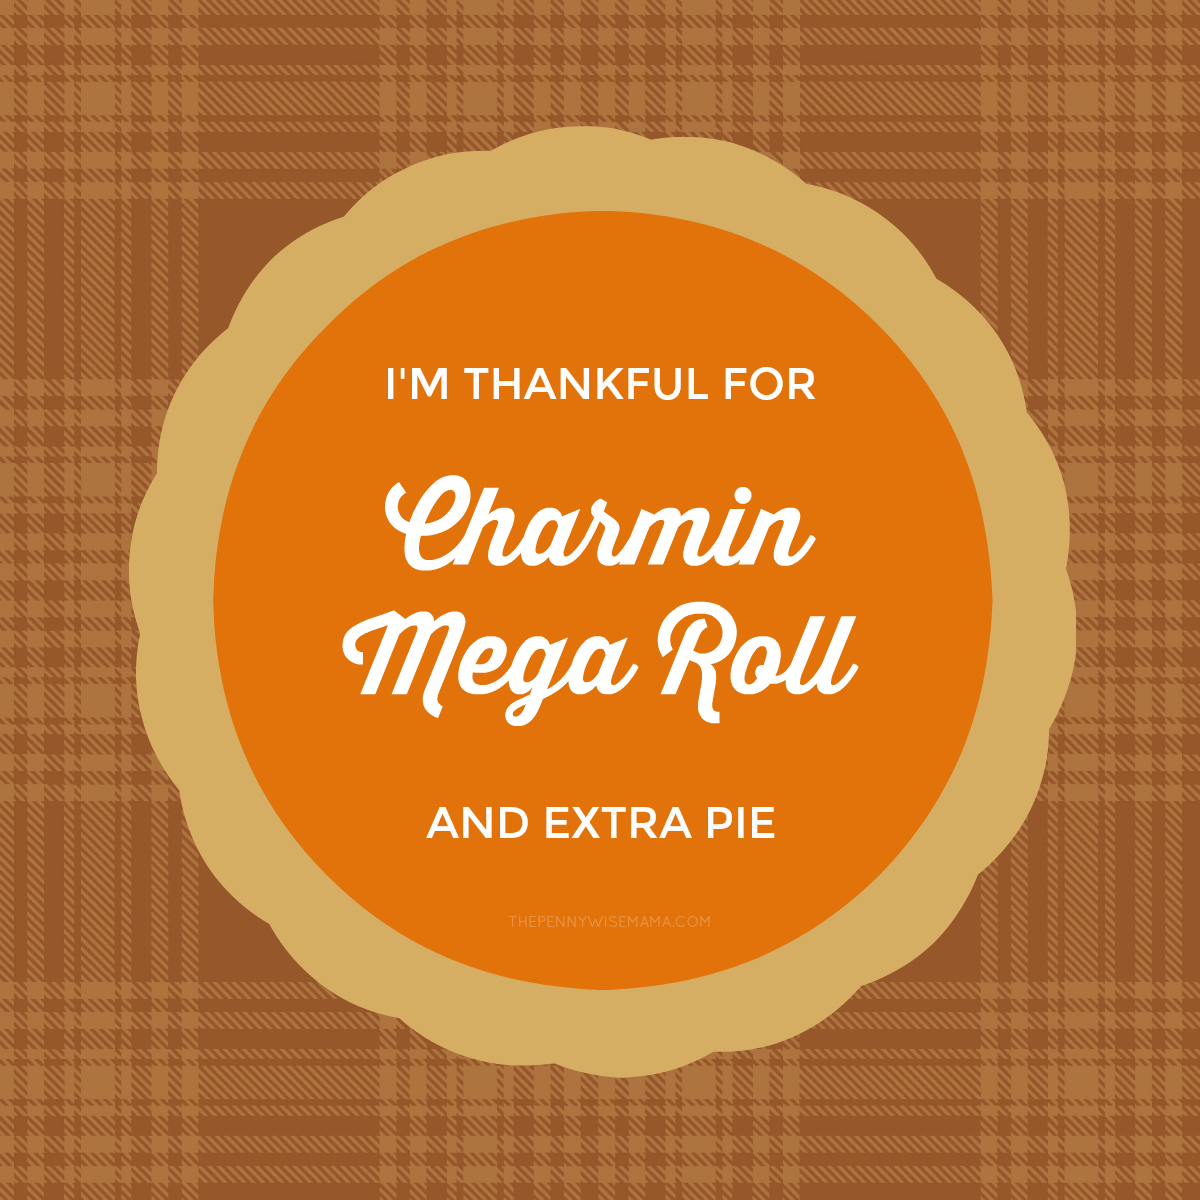 charmin thanksgiving